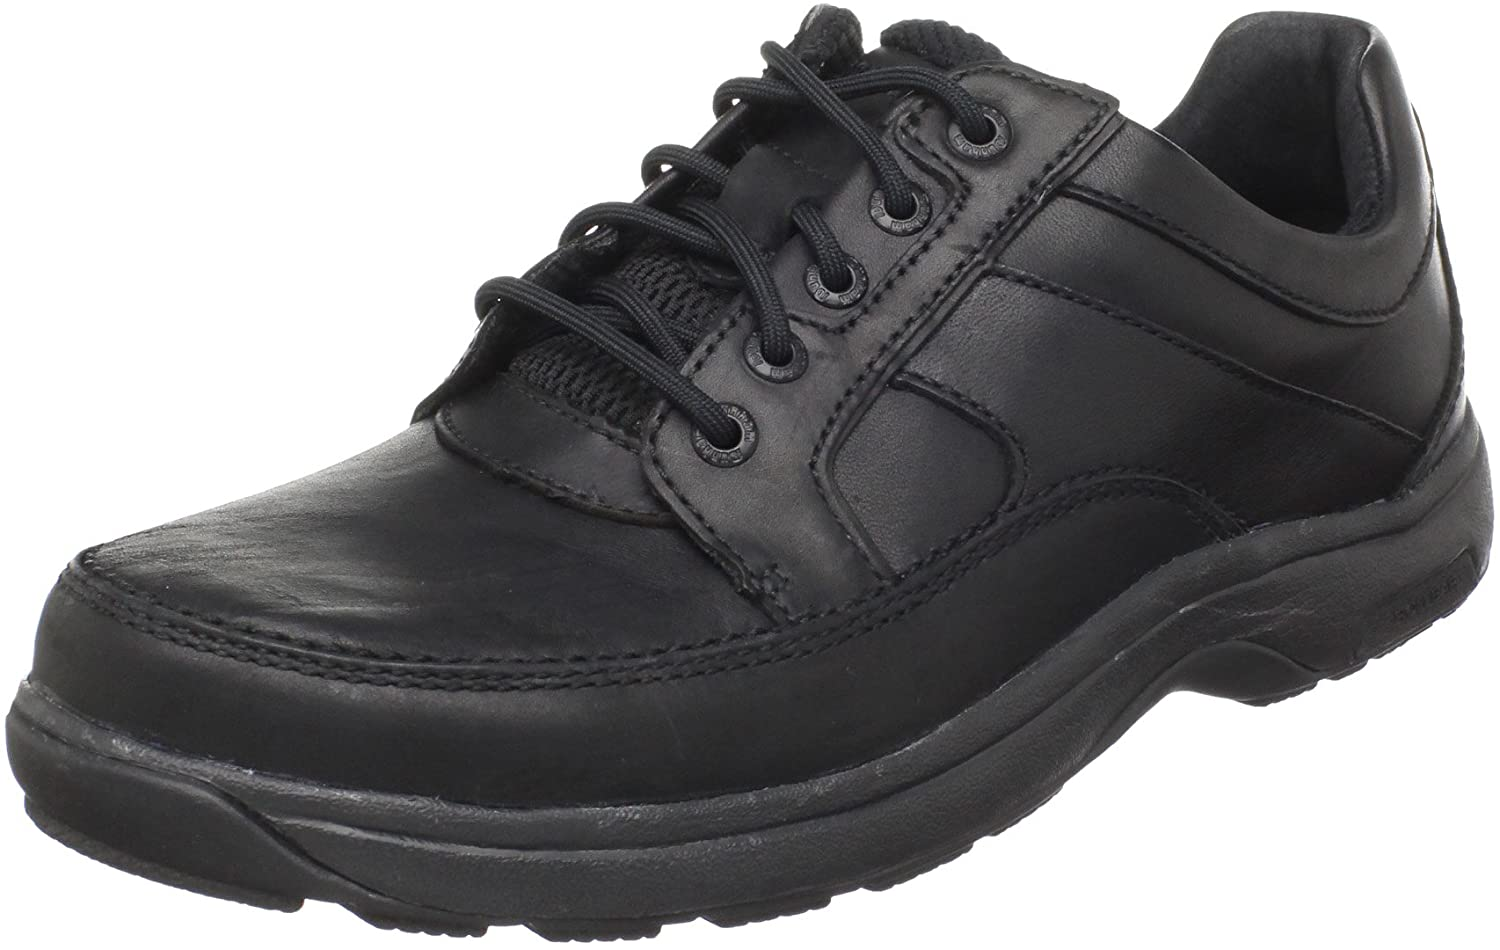 Dunham Men's Max 42% OFF Midland Limited time for free shipping Oxford